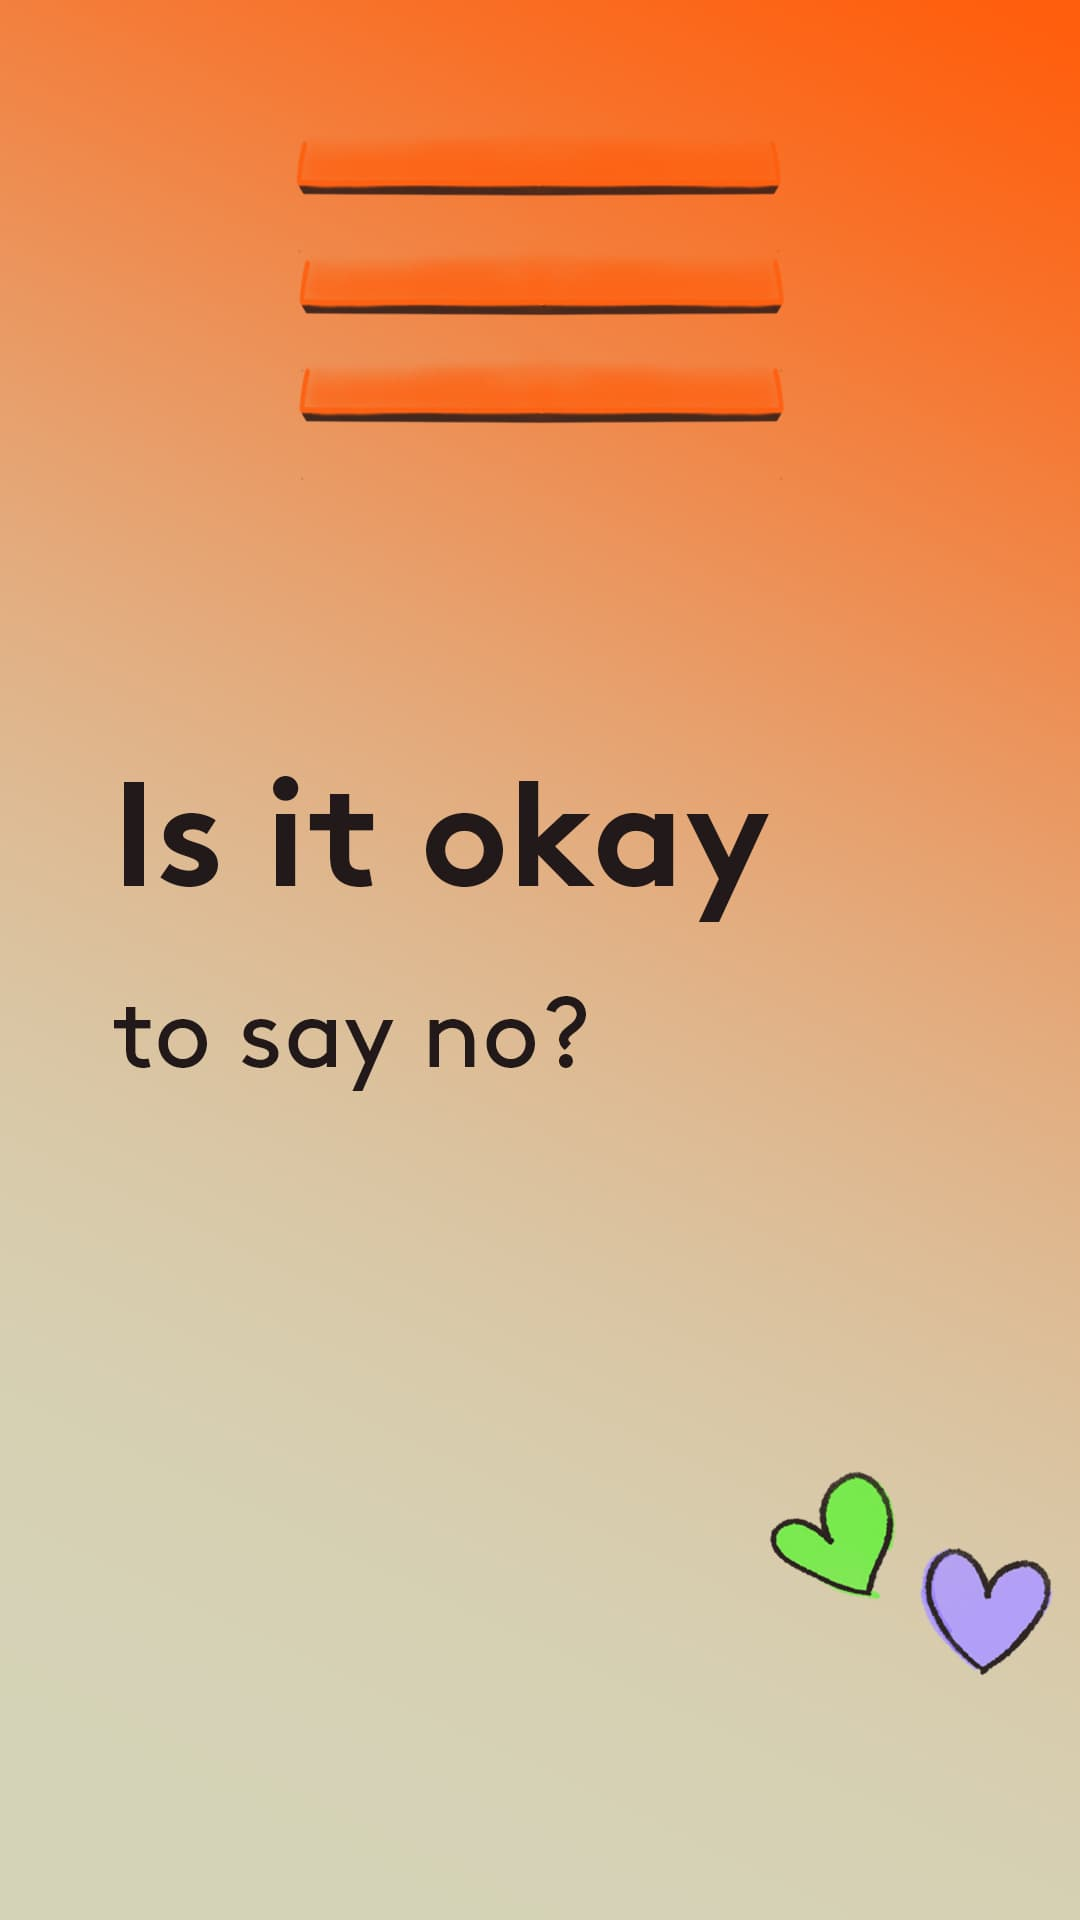 Is it okay to say no?